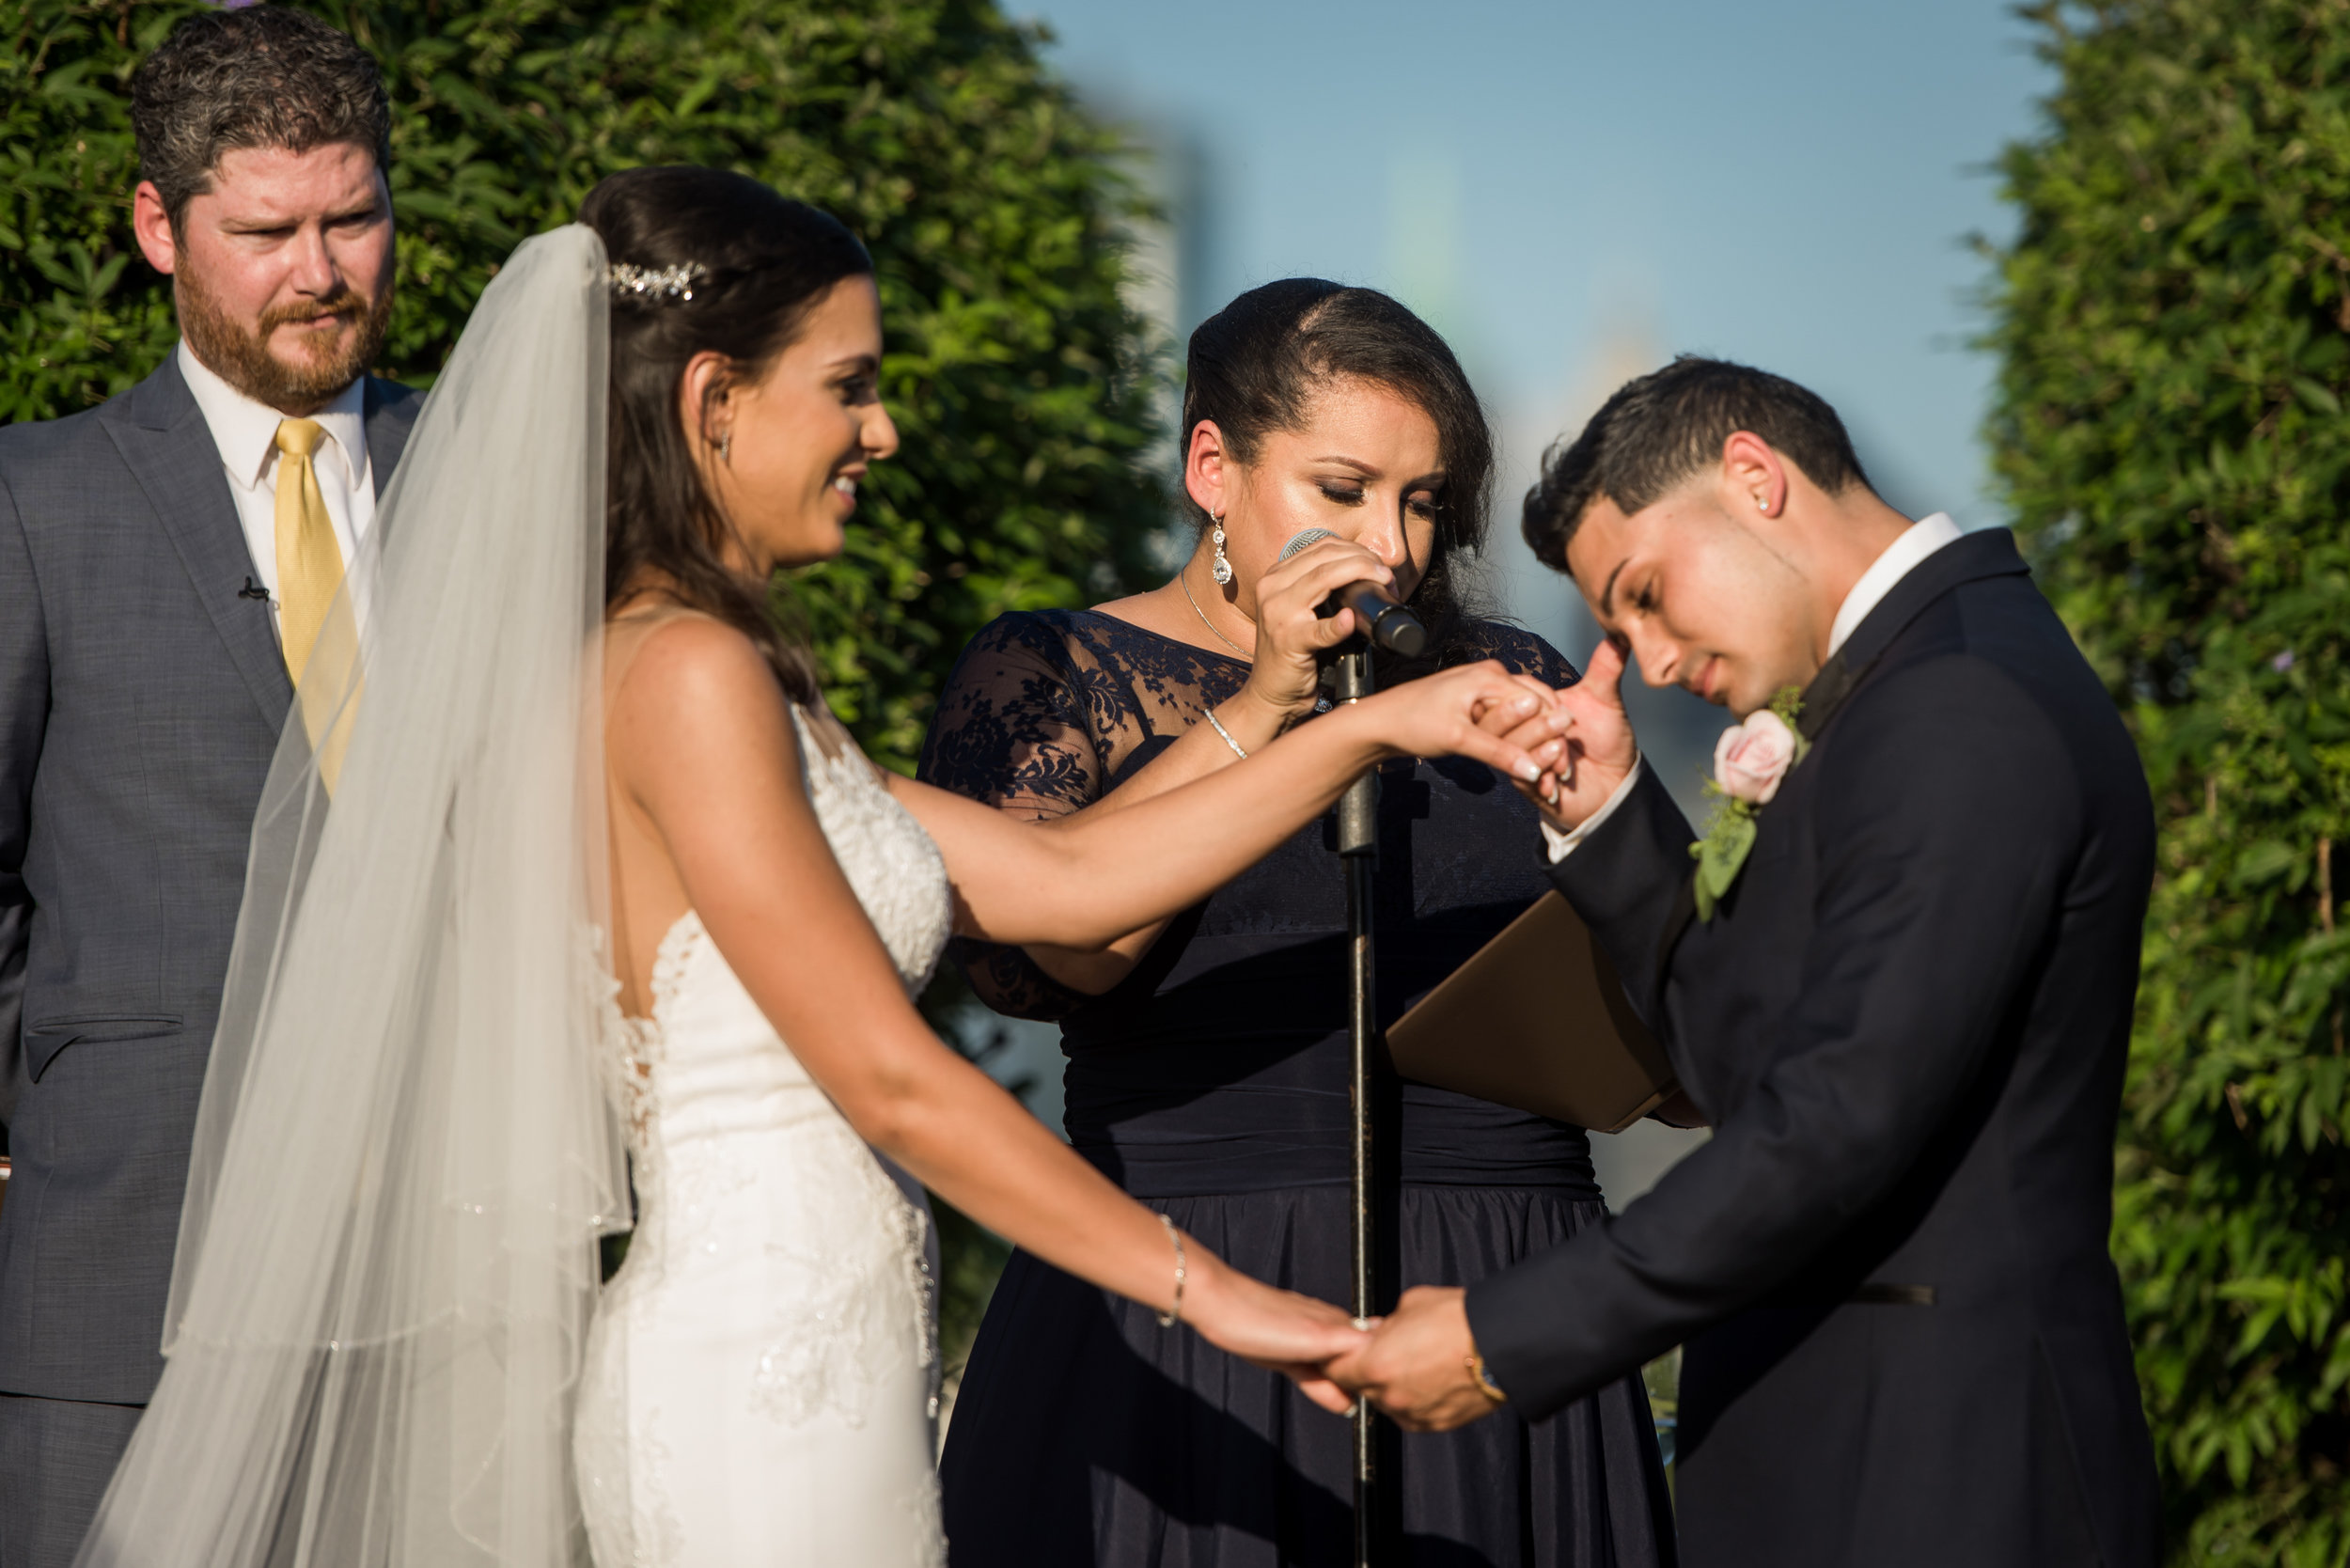 Stefy Hilmer Photography-emotions during the wedding ceremony.jpg